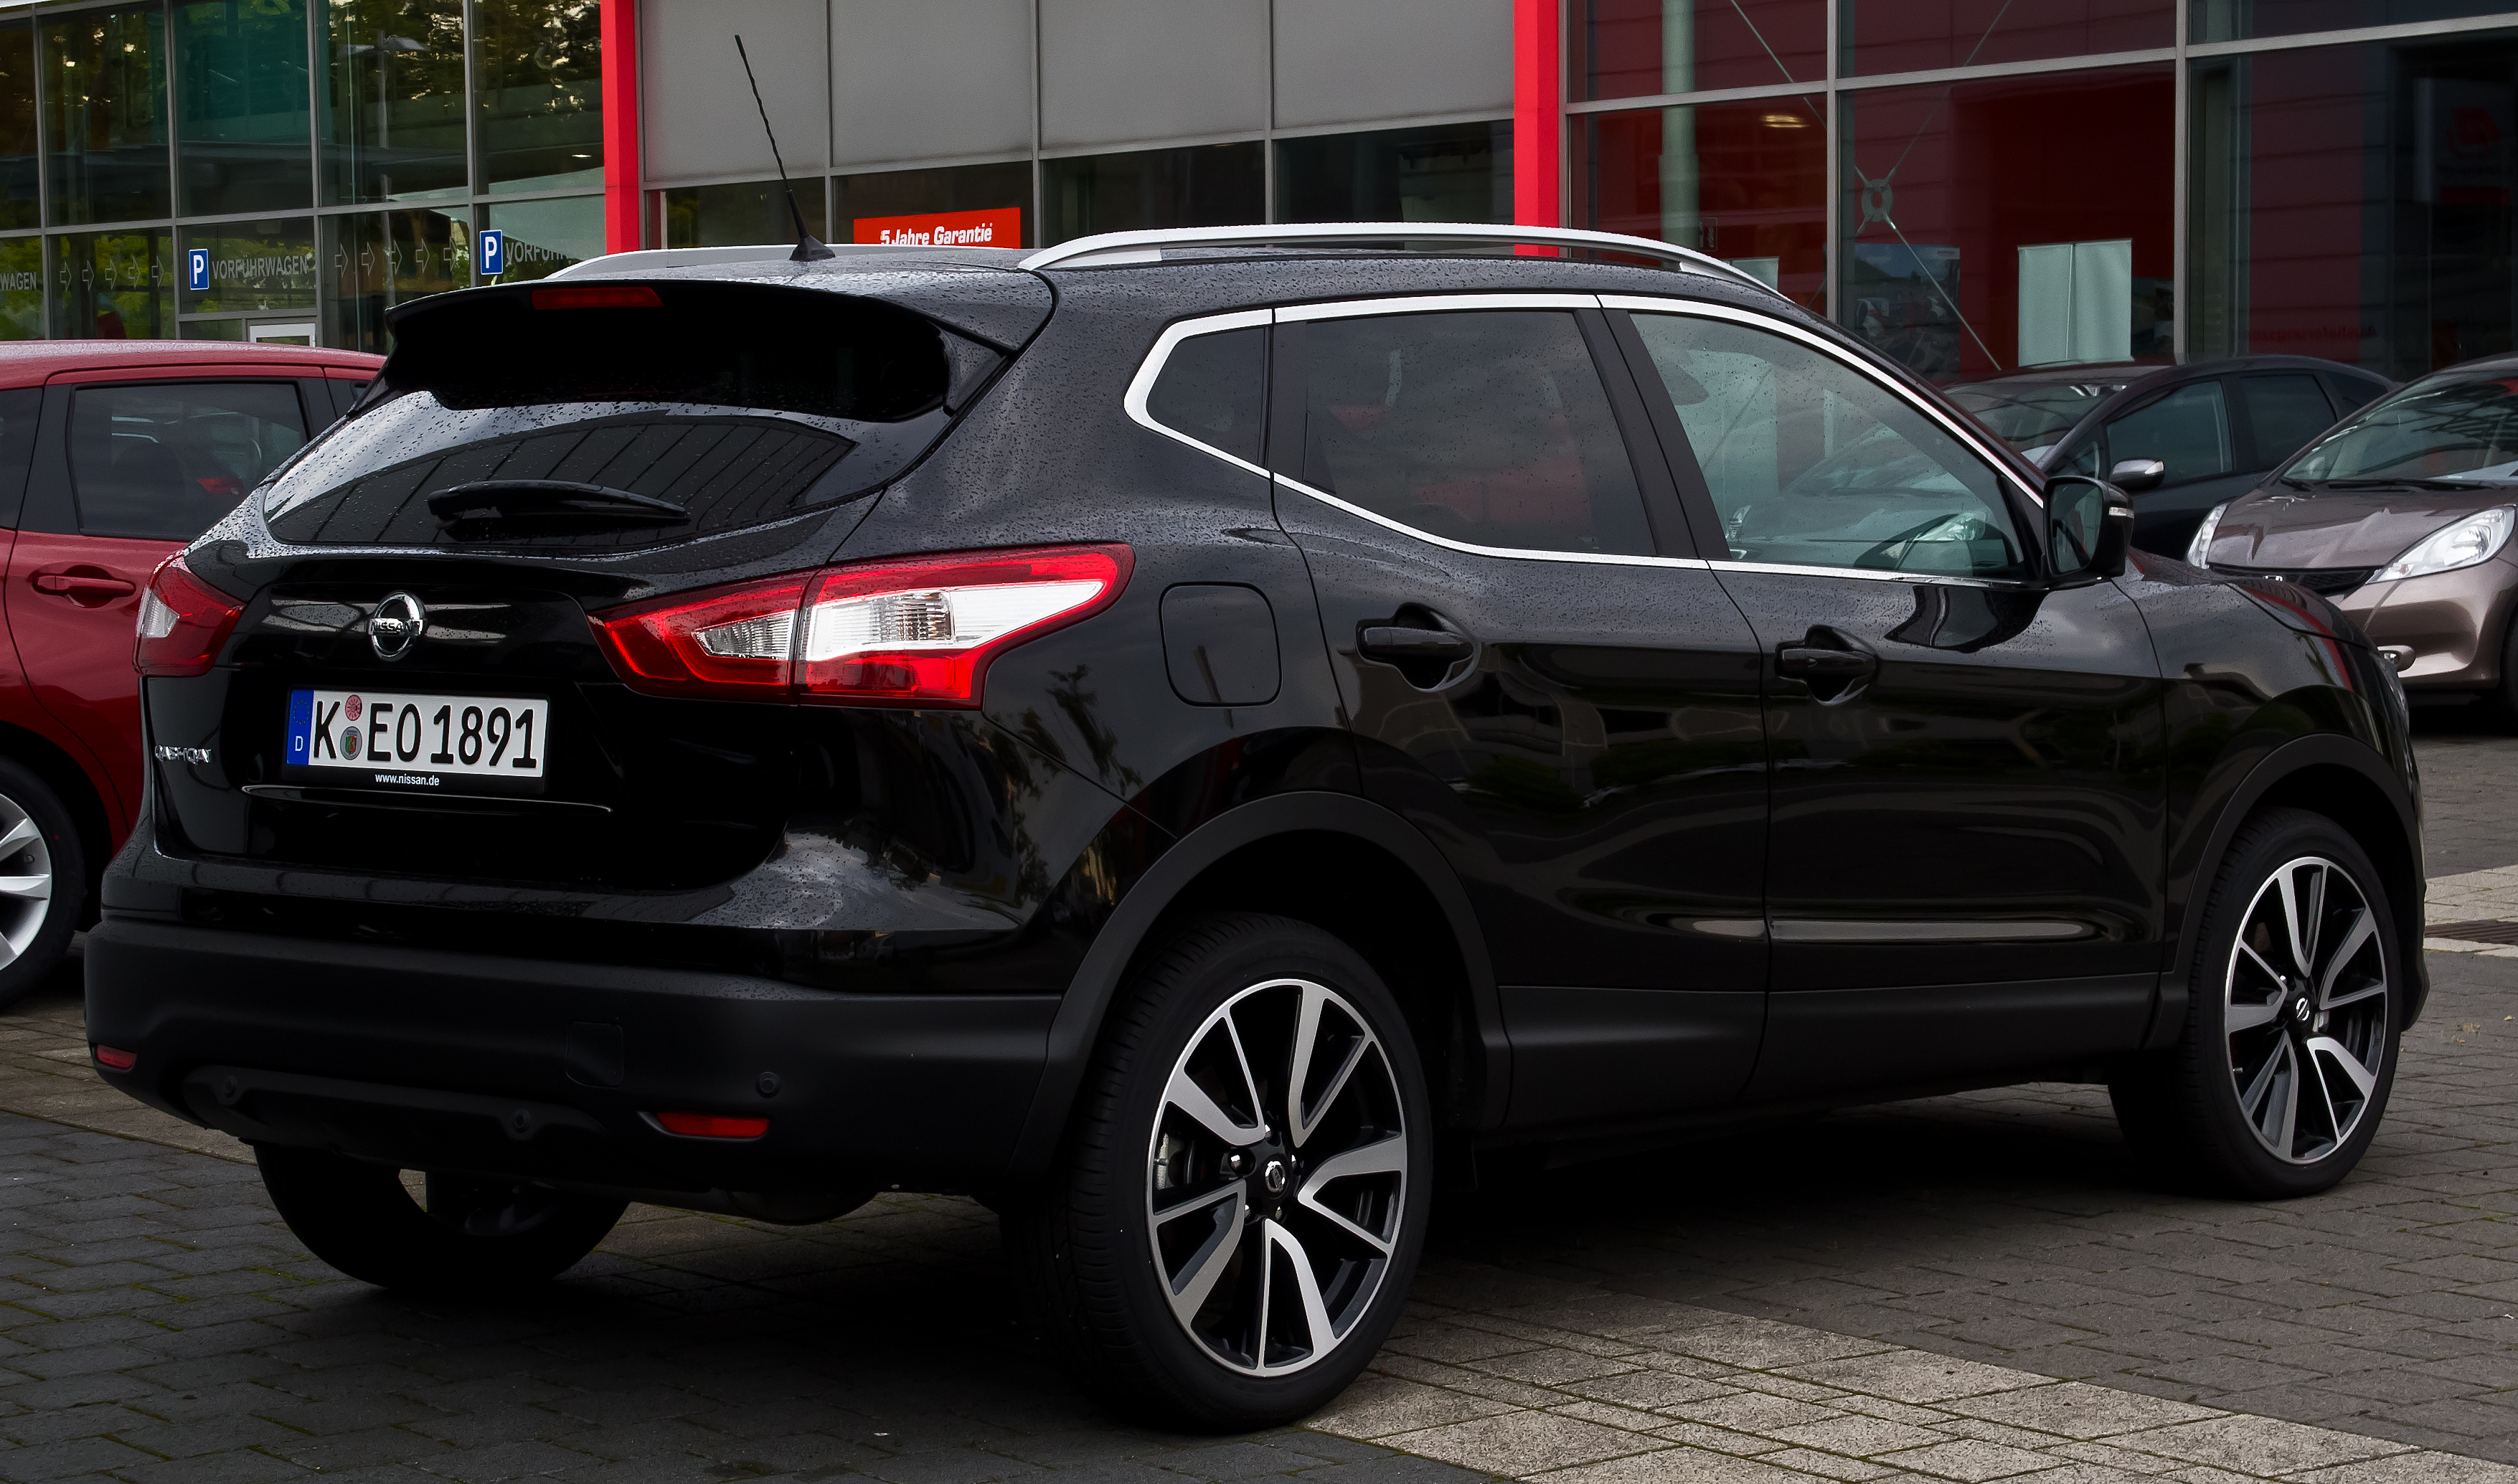 Description Nissan Qashqai Tekna (II) – Heckansicht, 24. August 2014